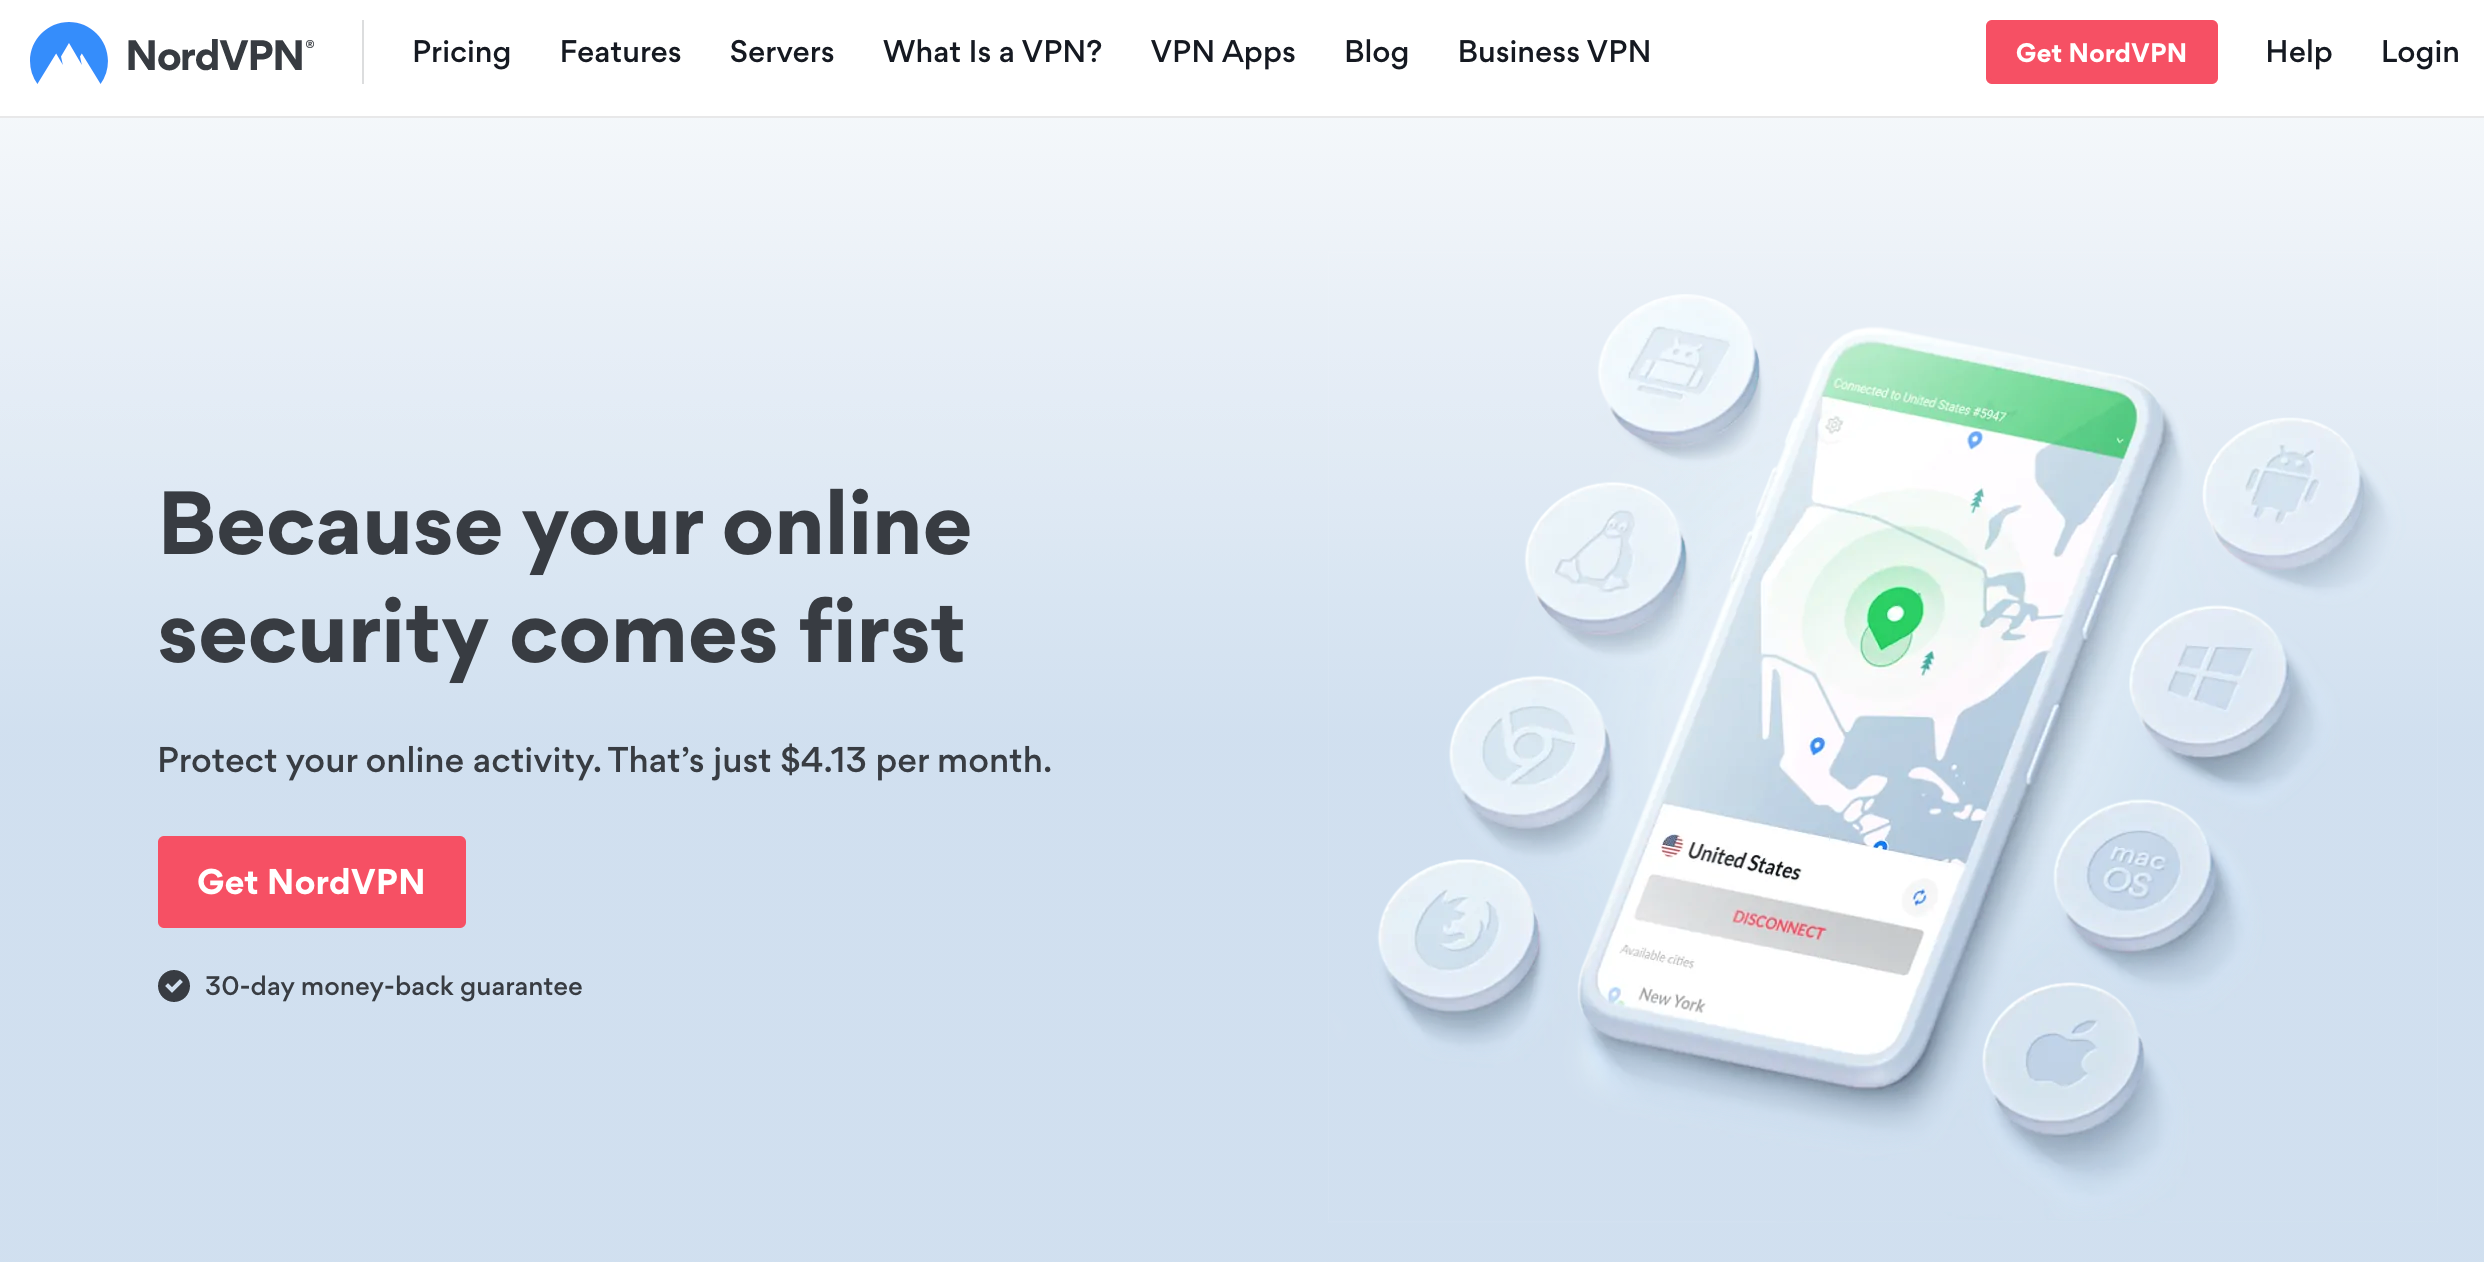 Get the best VPN deal with NordVPN